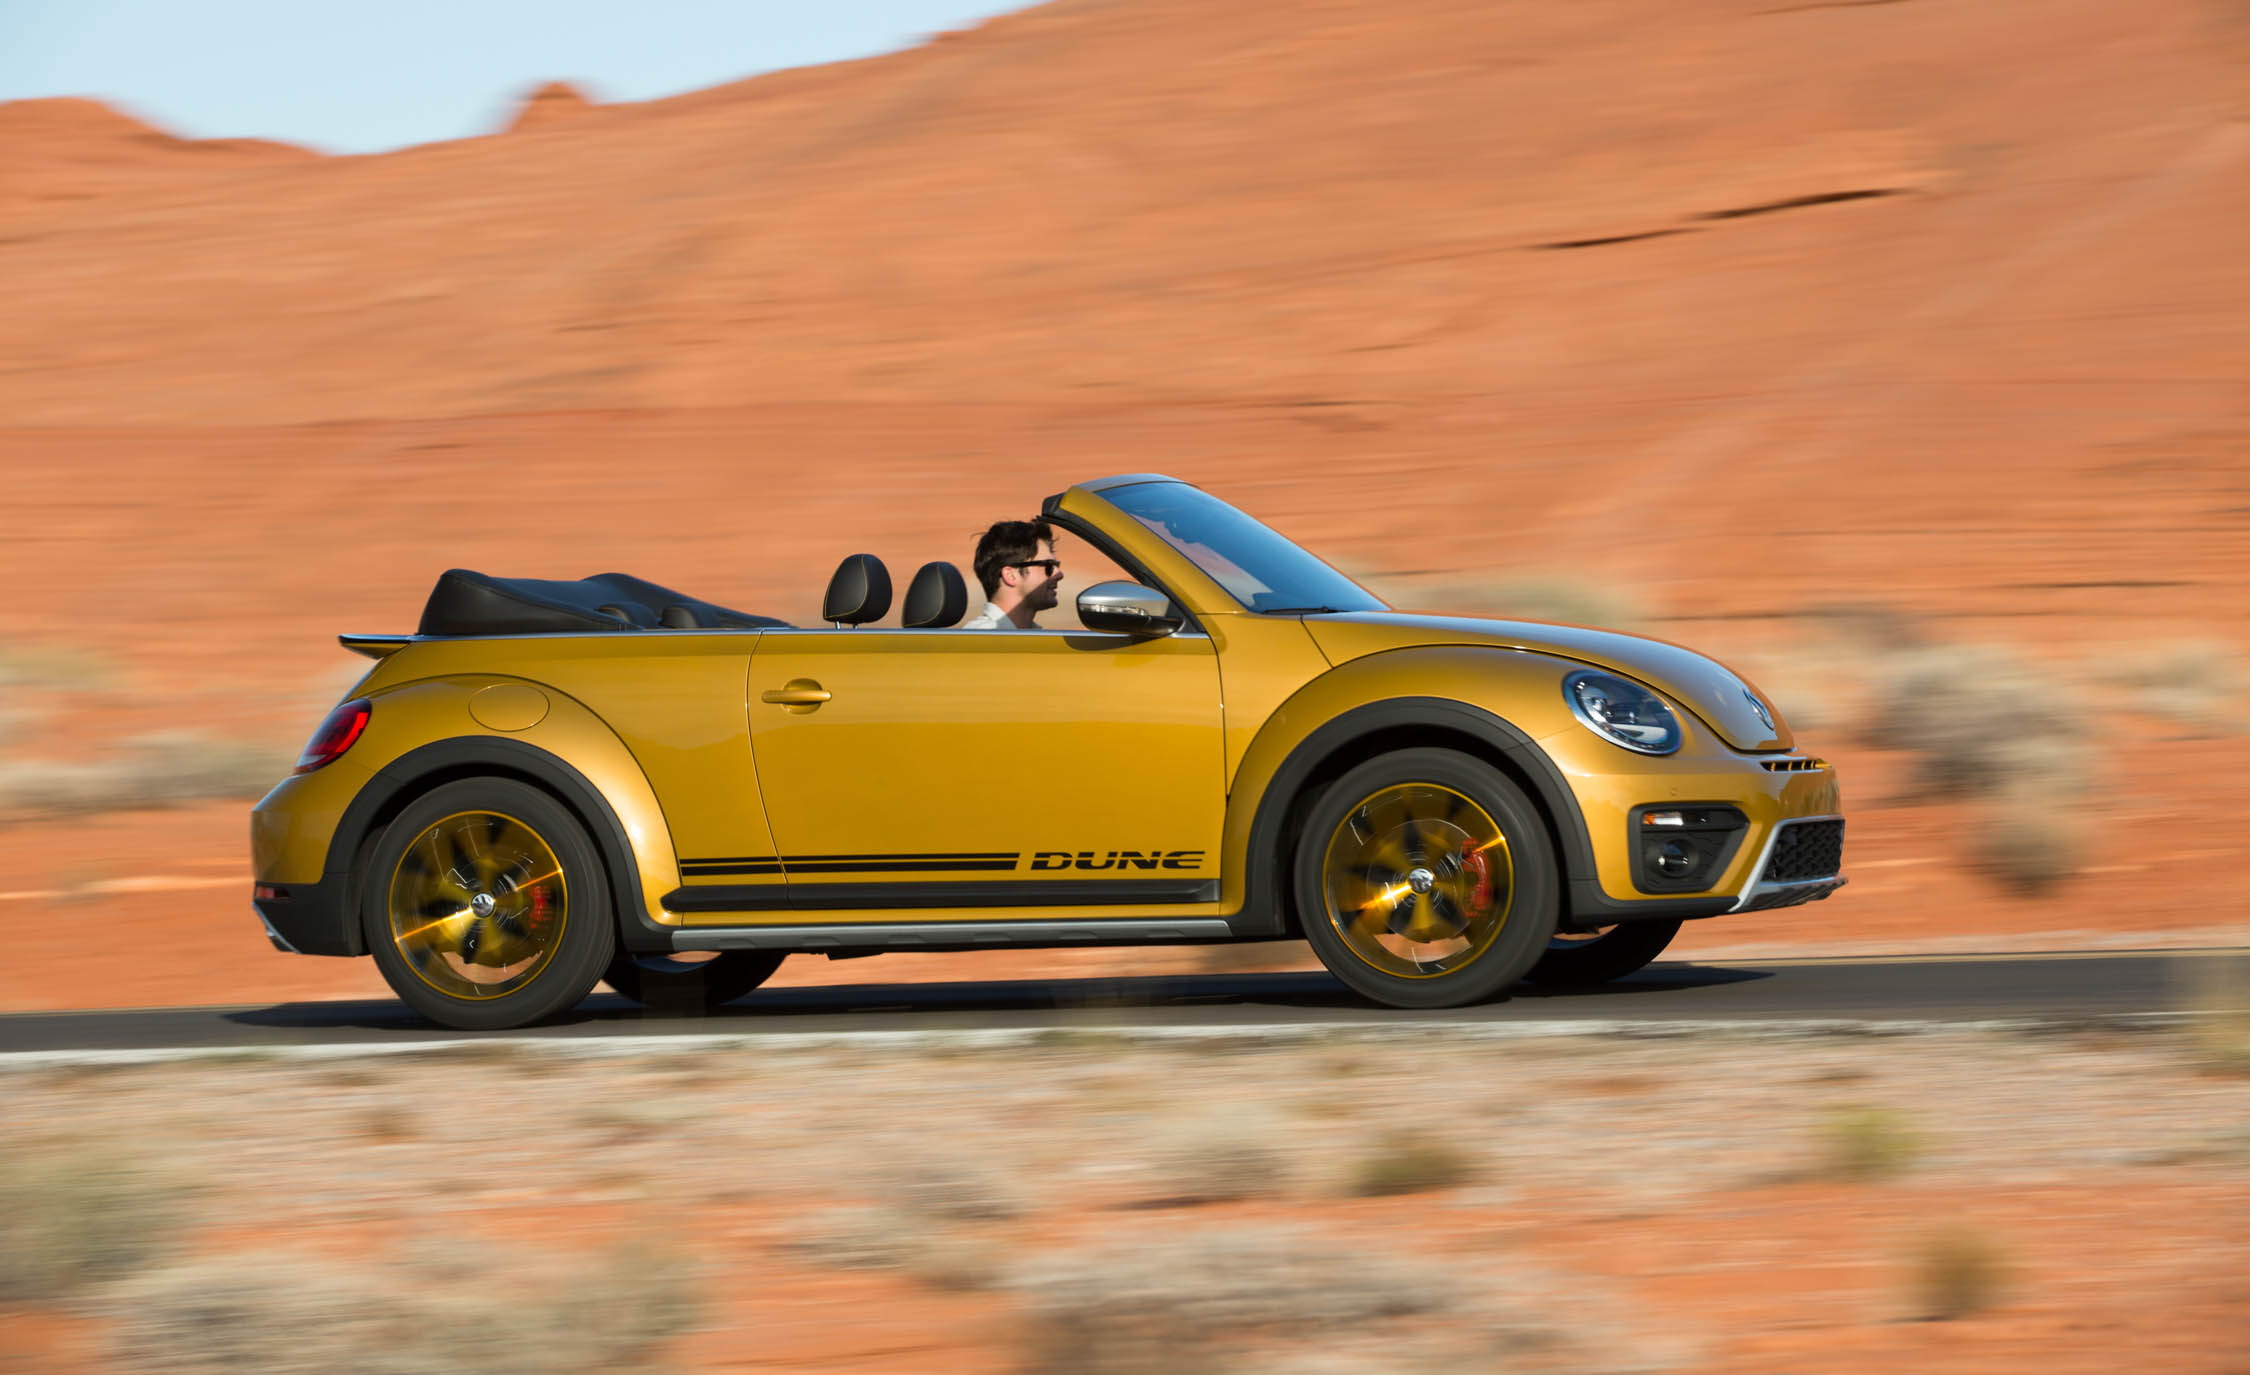 2016 Volkswagen Beetle Dune Convertible Test Side (Photo 9 of 32)